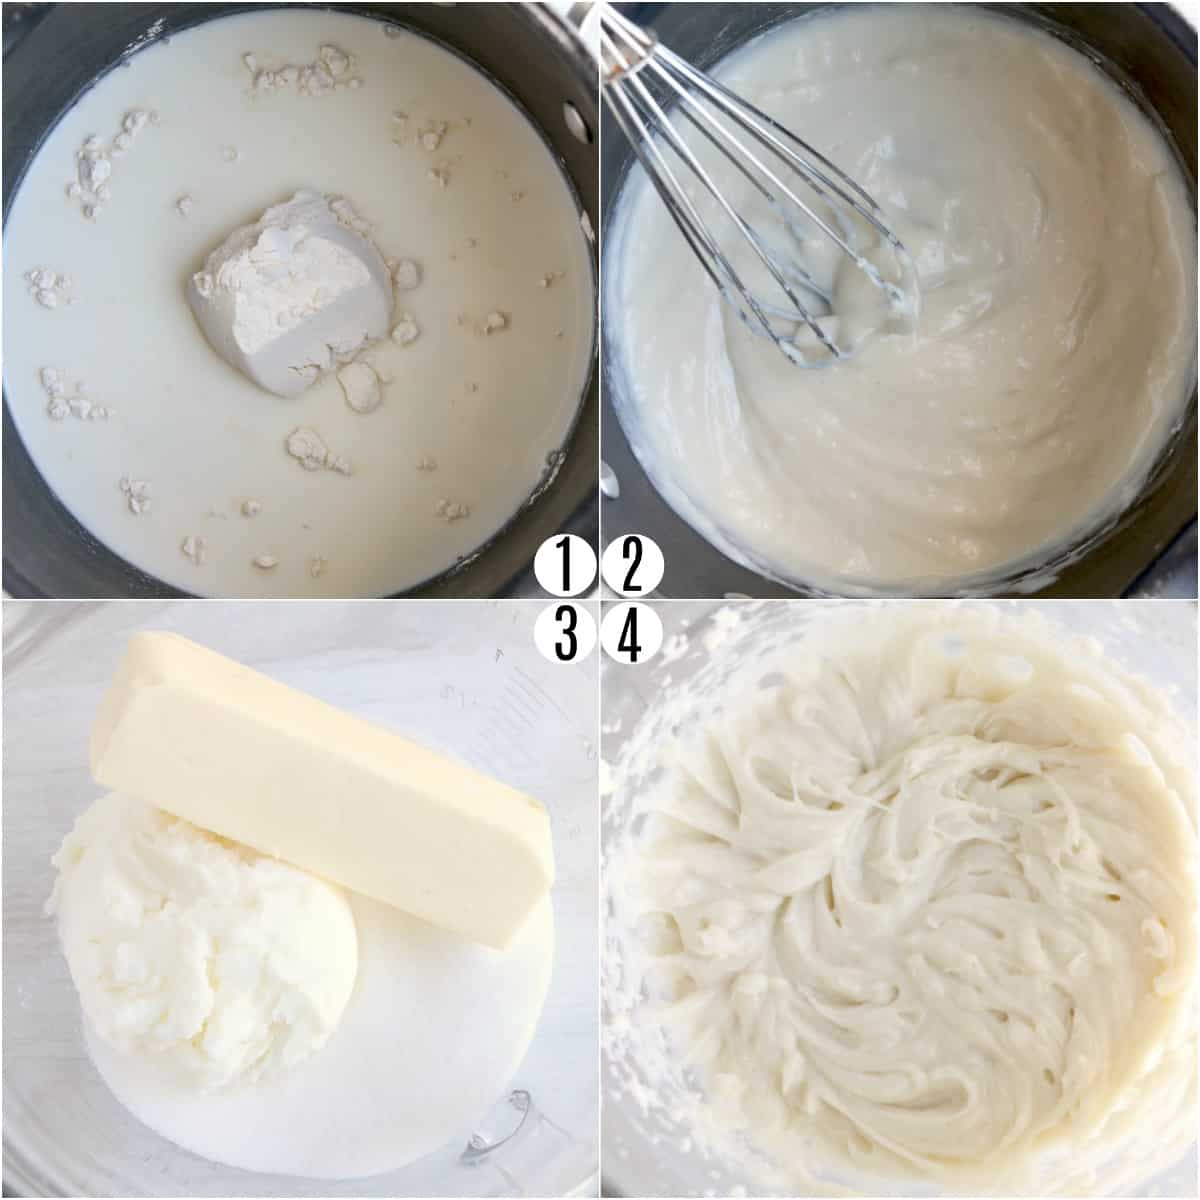 Step by step photos showing how to make whoopie pie filling.